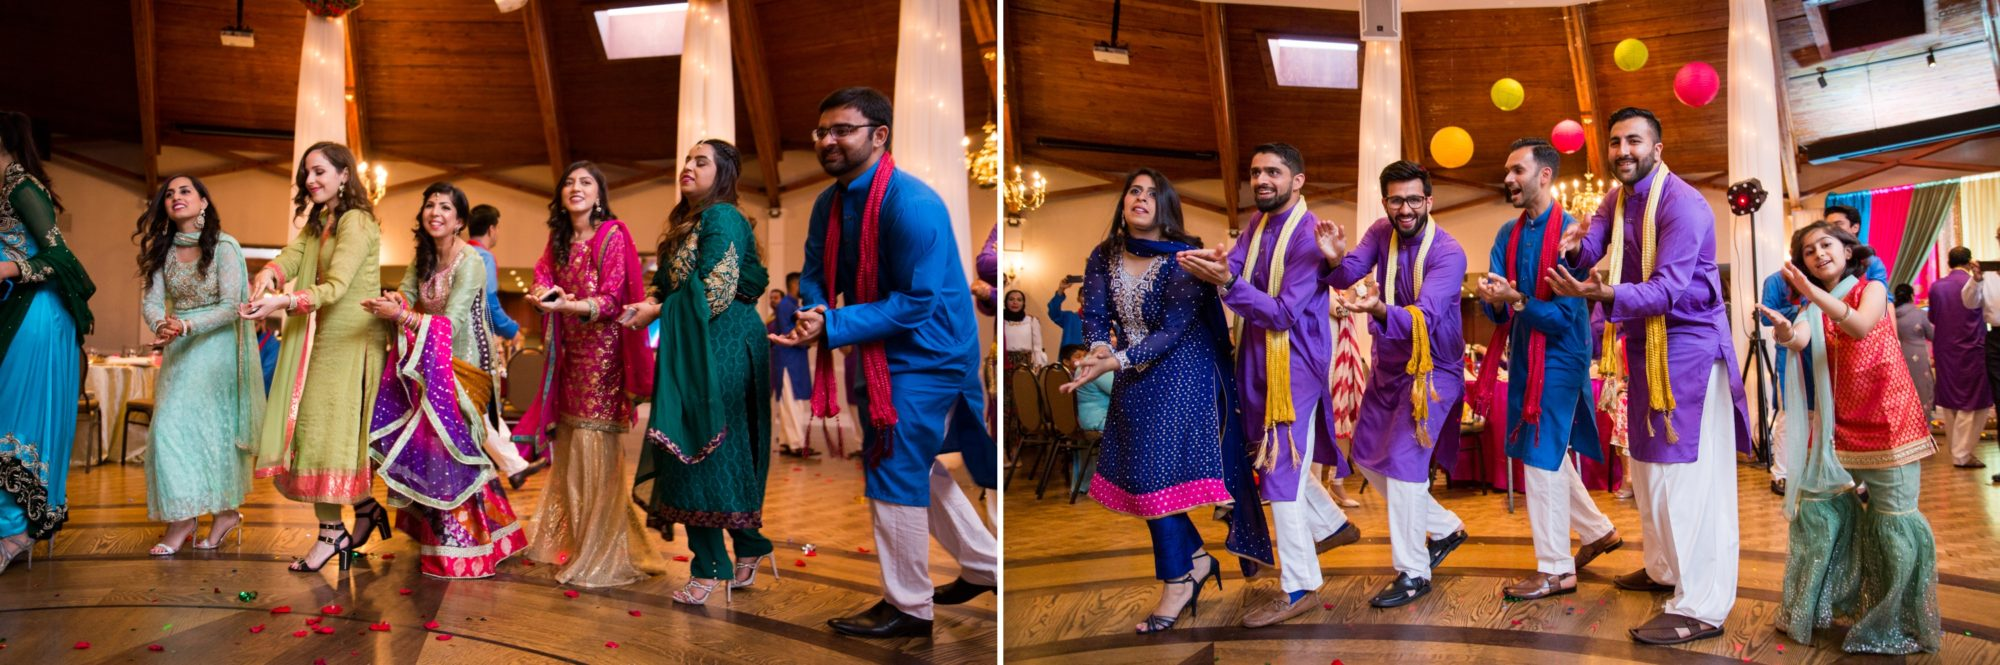 Indian Dance Wedding Mehndi Ceremony Zsuzsi Pal Photography Saba and Jawad